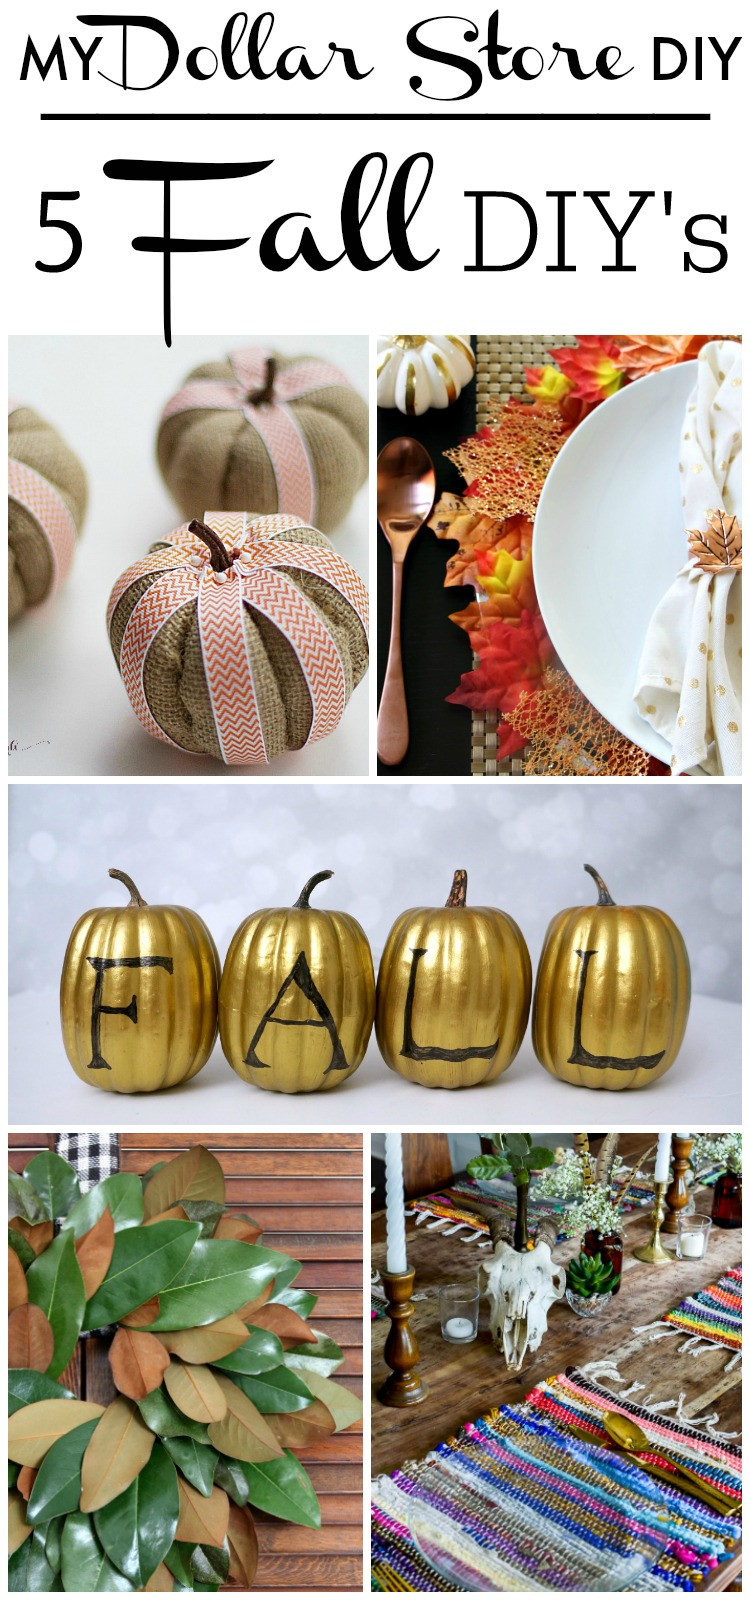 DIY Dollar Store Supply Projects for Fall